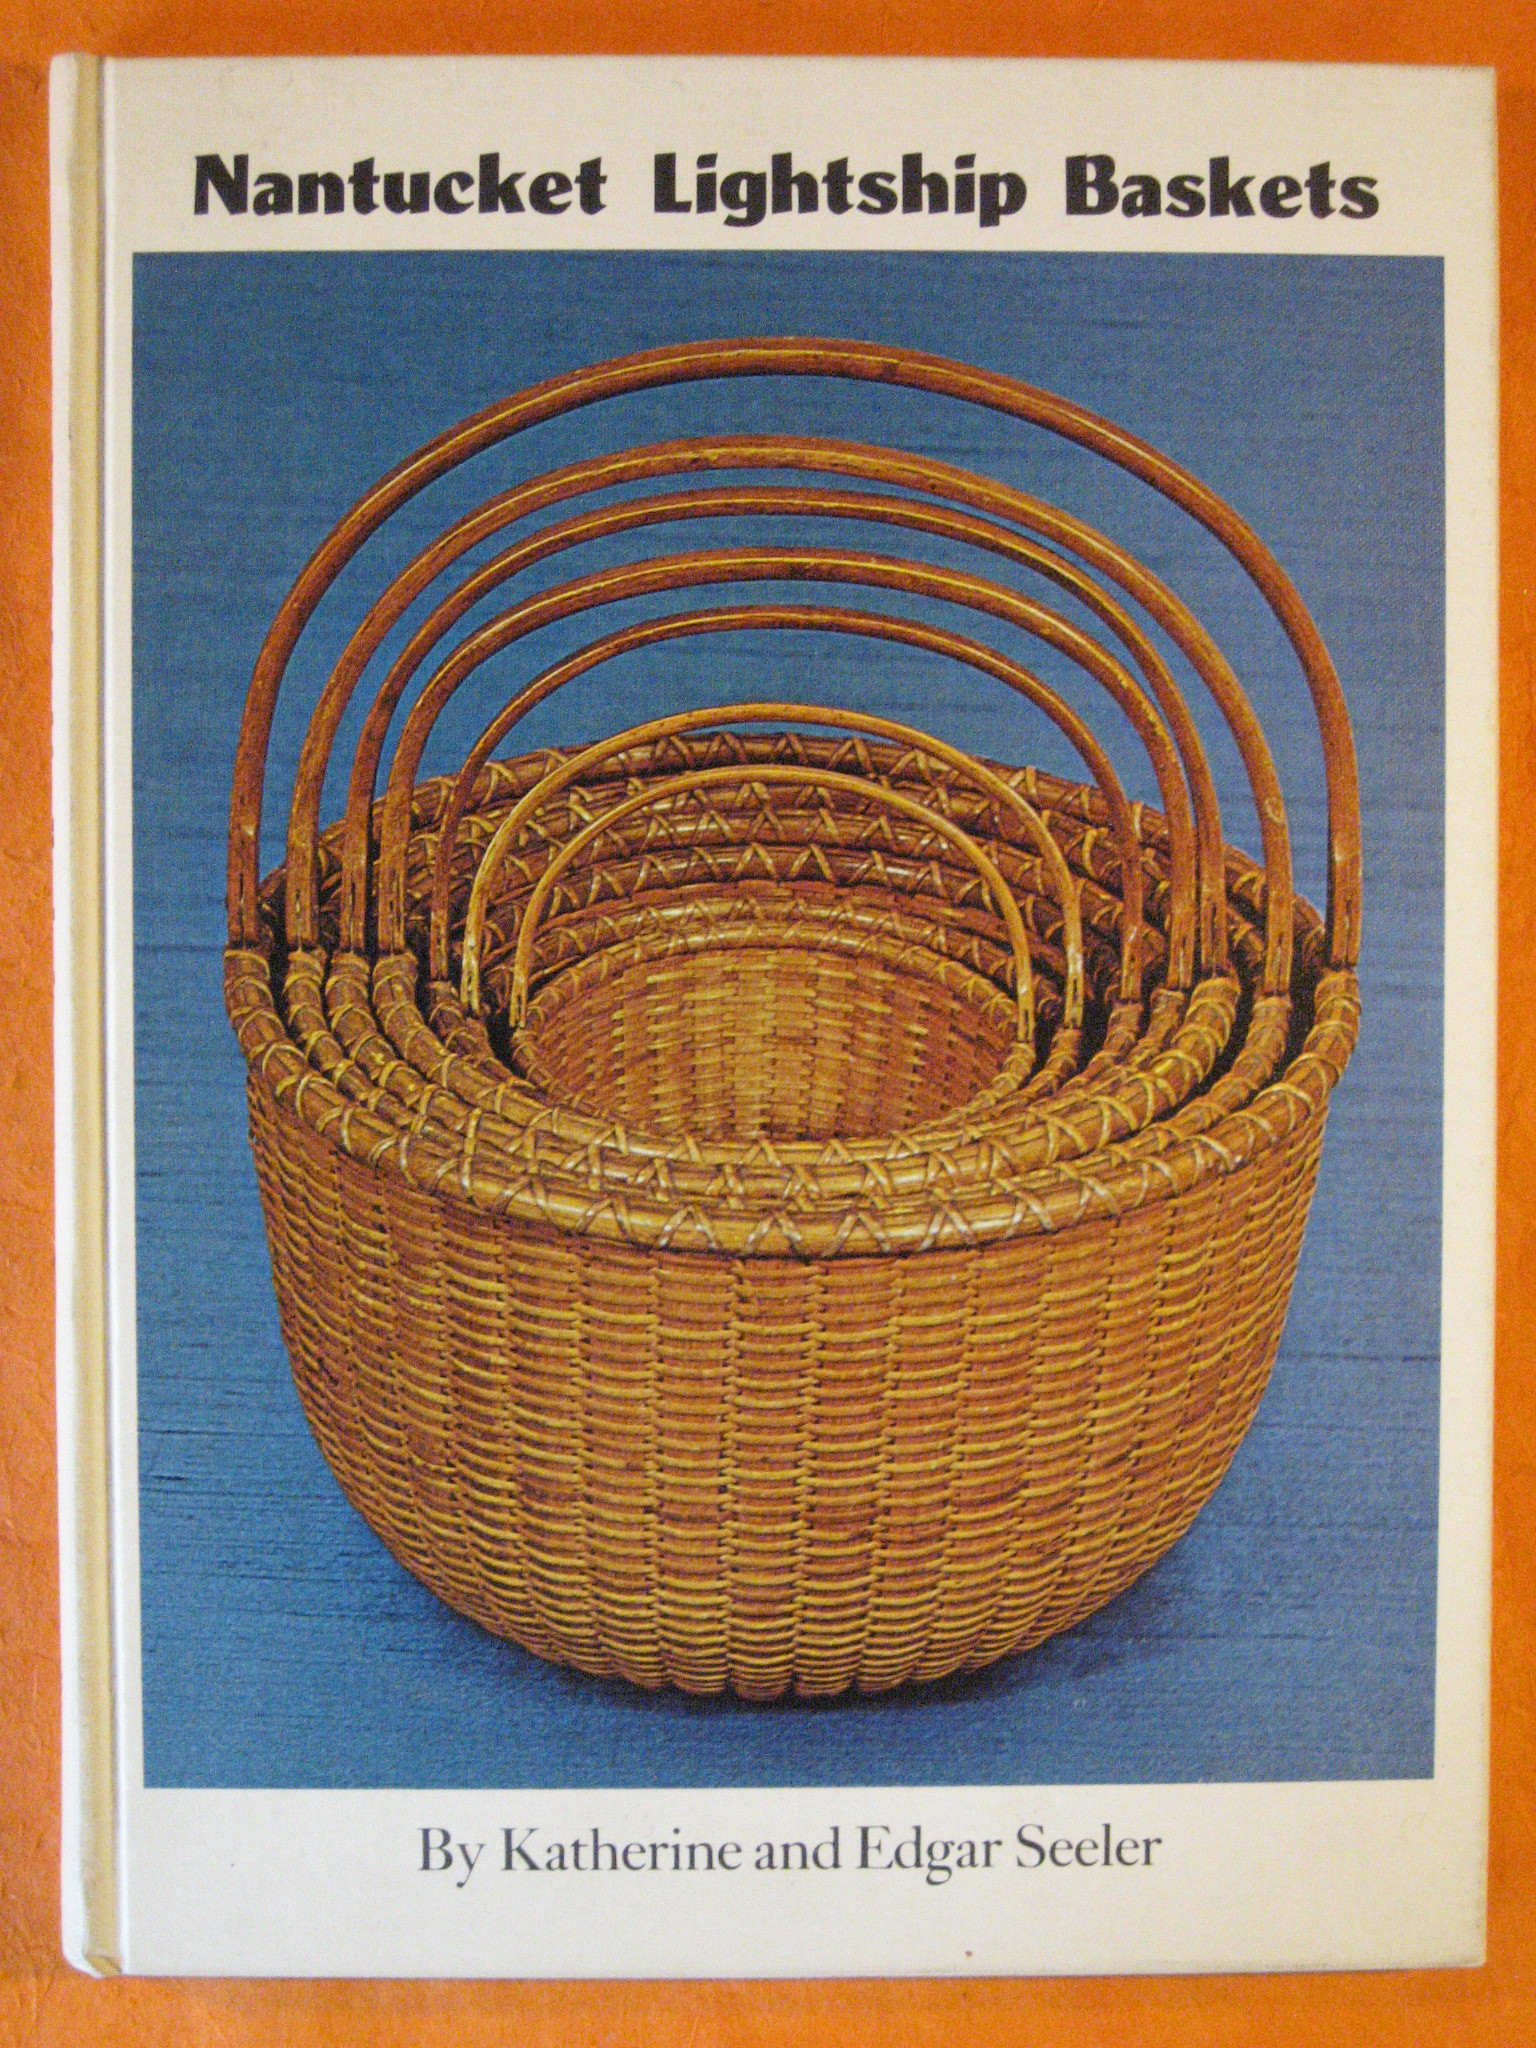 Nantucket Lightship Baskets, Seeler, Katherine; Seeler, Edgar